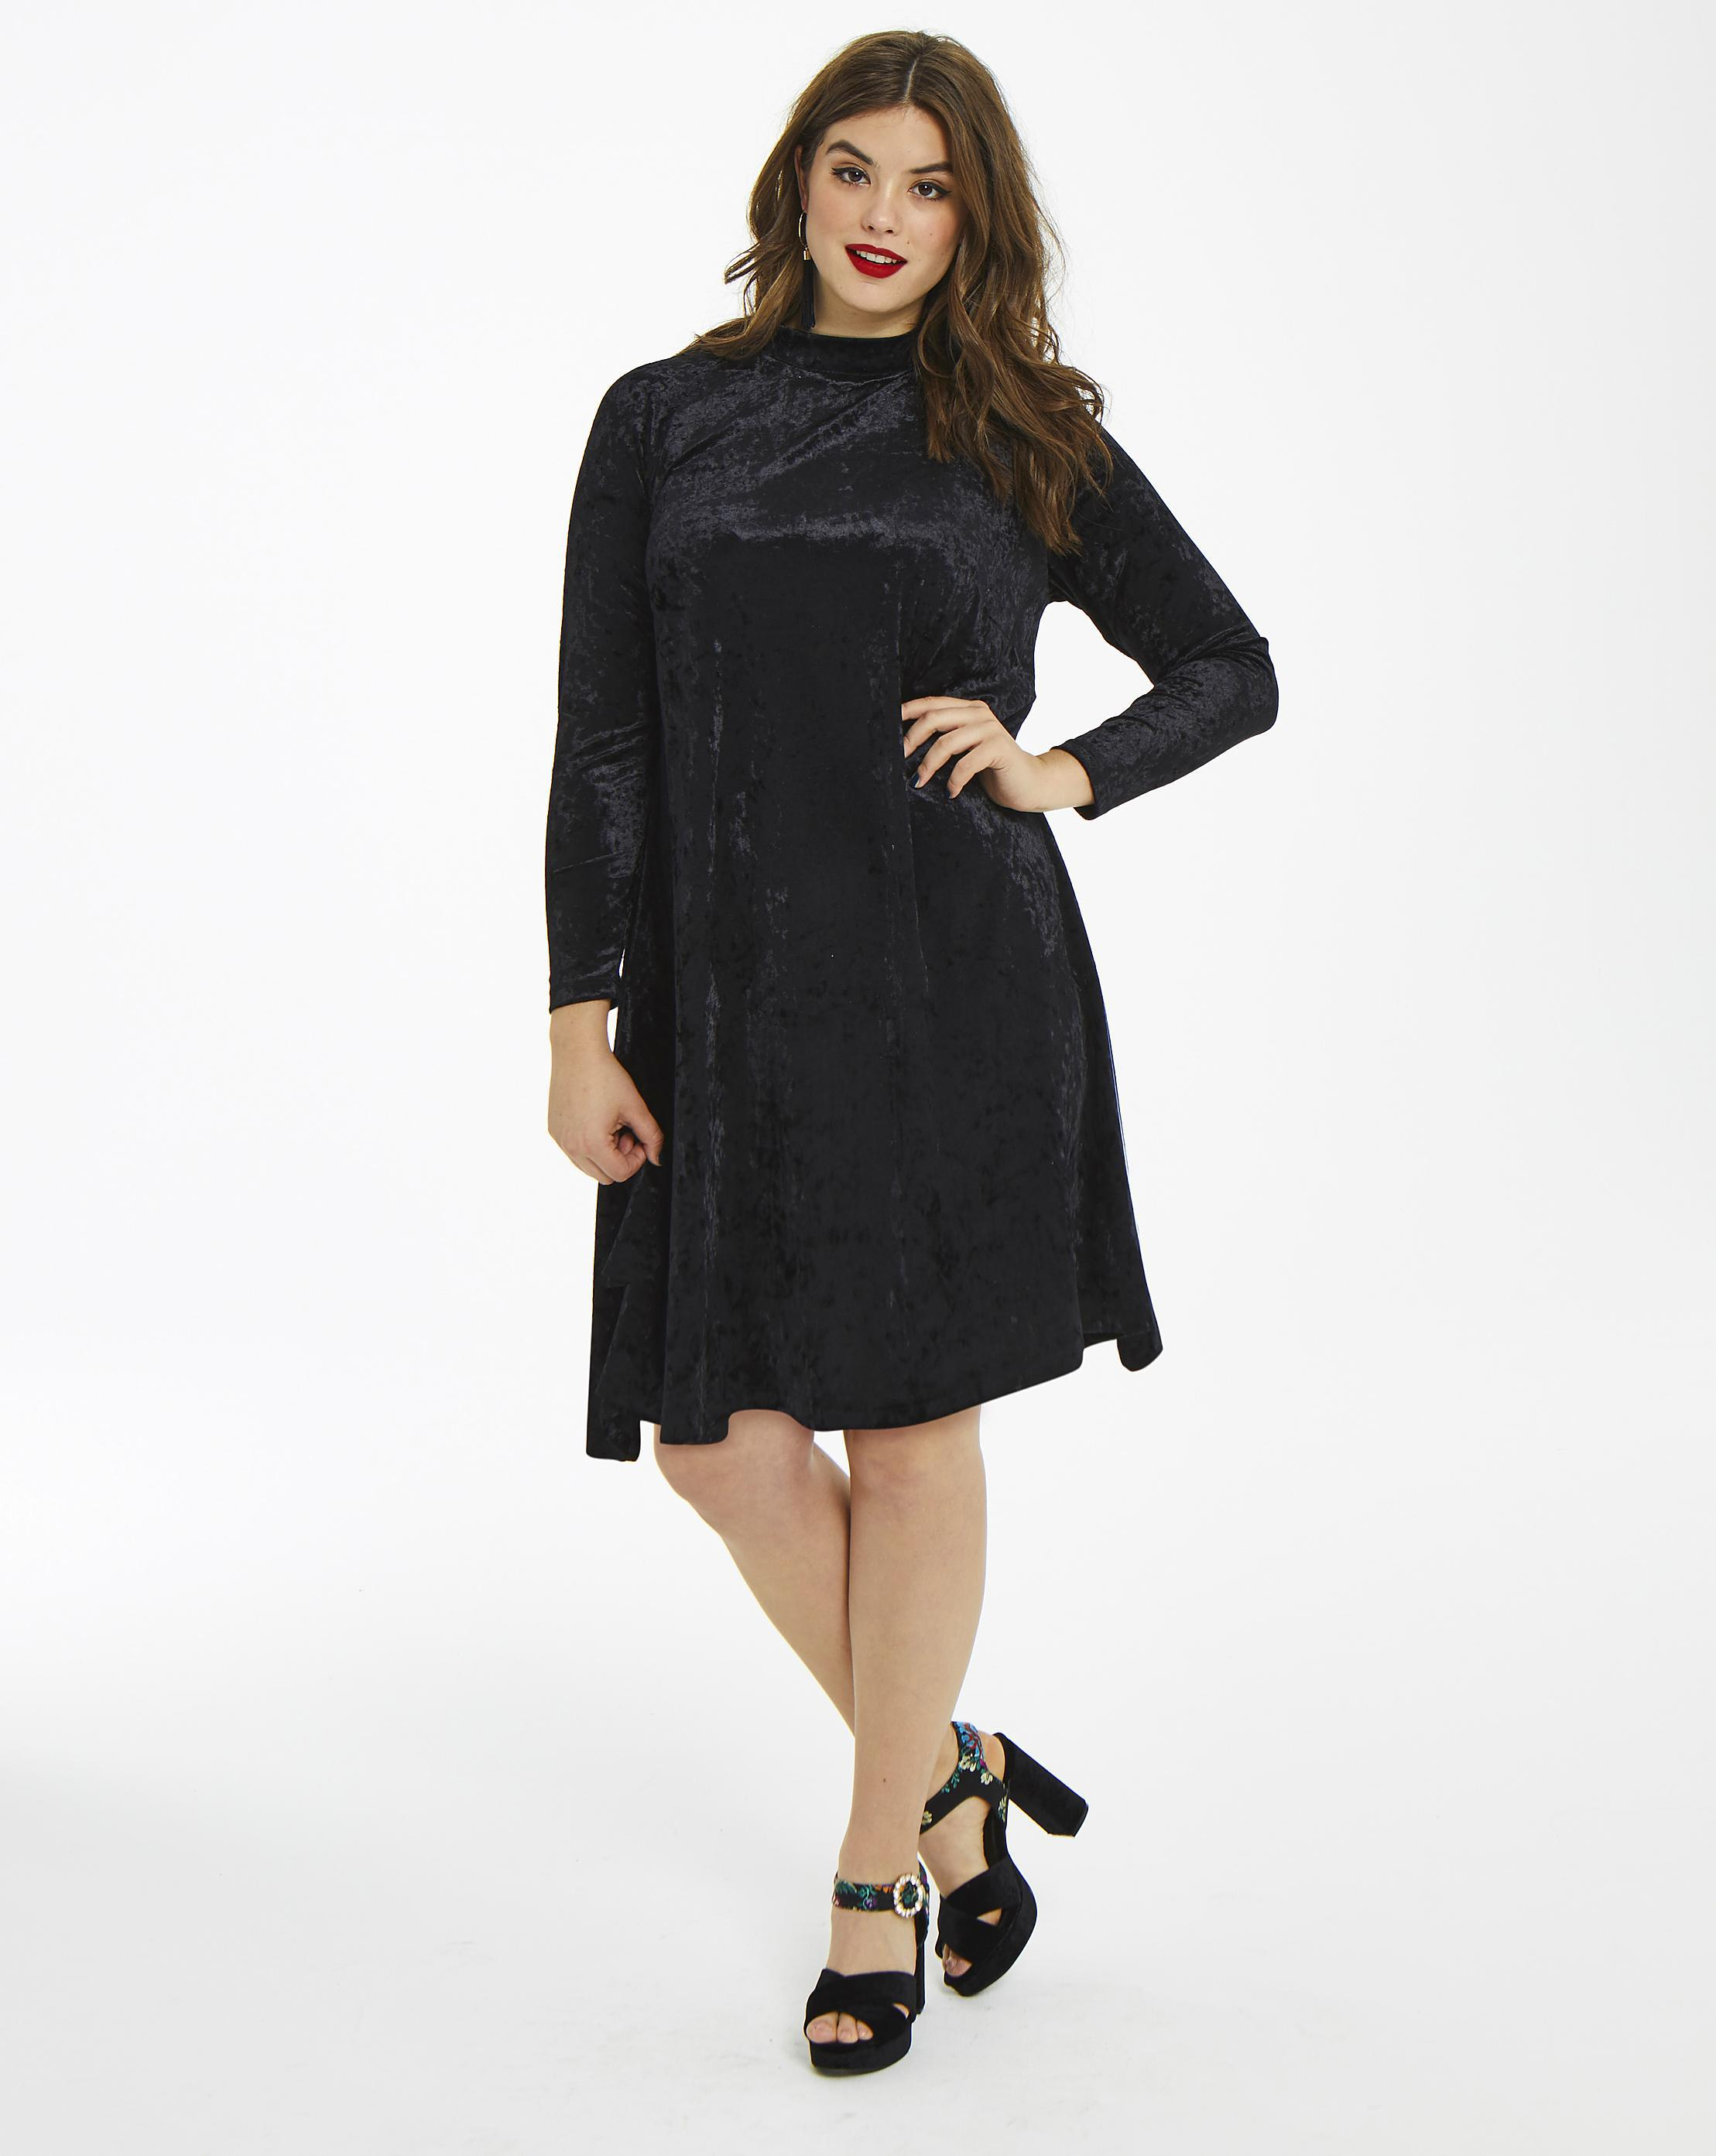 6691b322270b Simply Be Glamorous Curve Crushed Velour Swing Dress in Black - Lyst